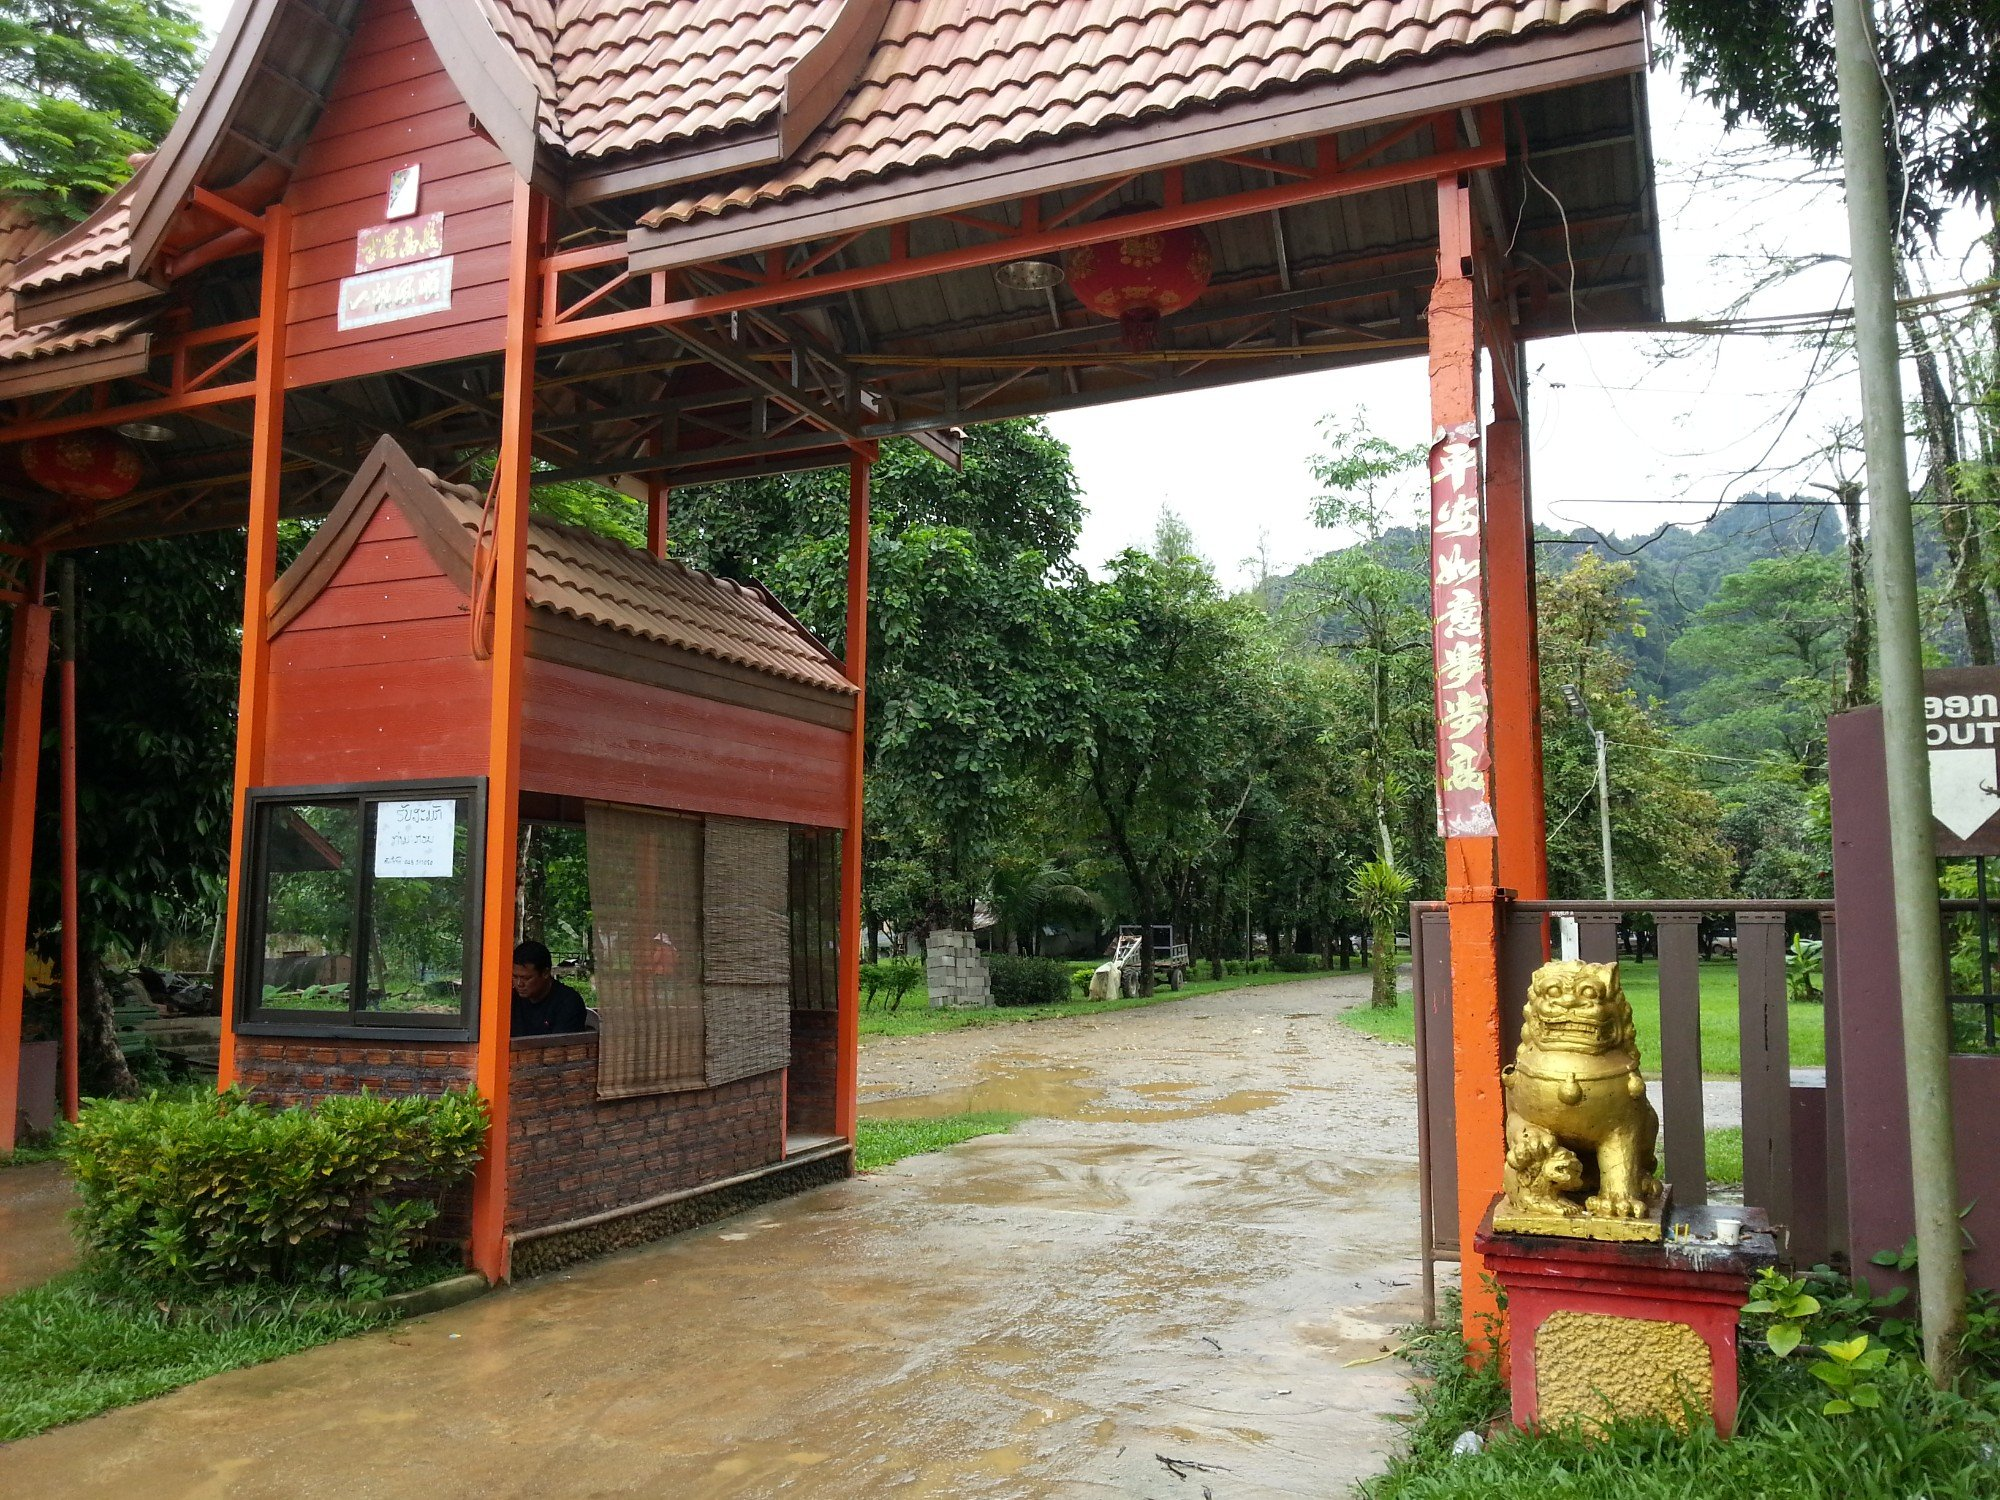 Entrance to the Tham Chang Cave area